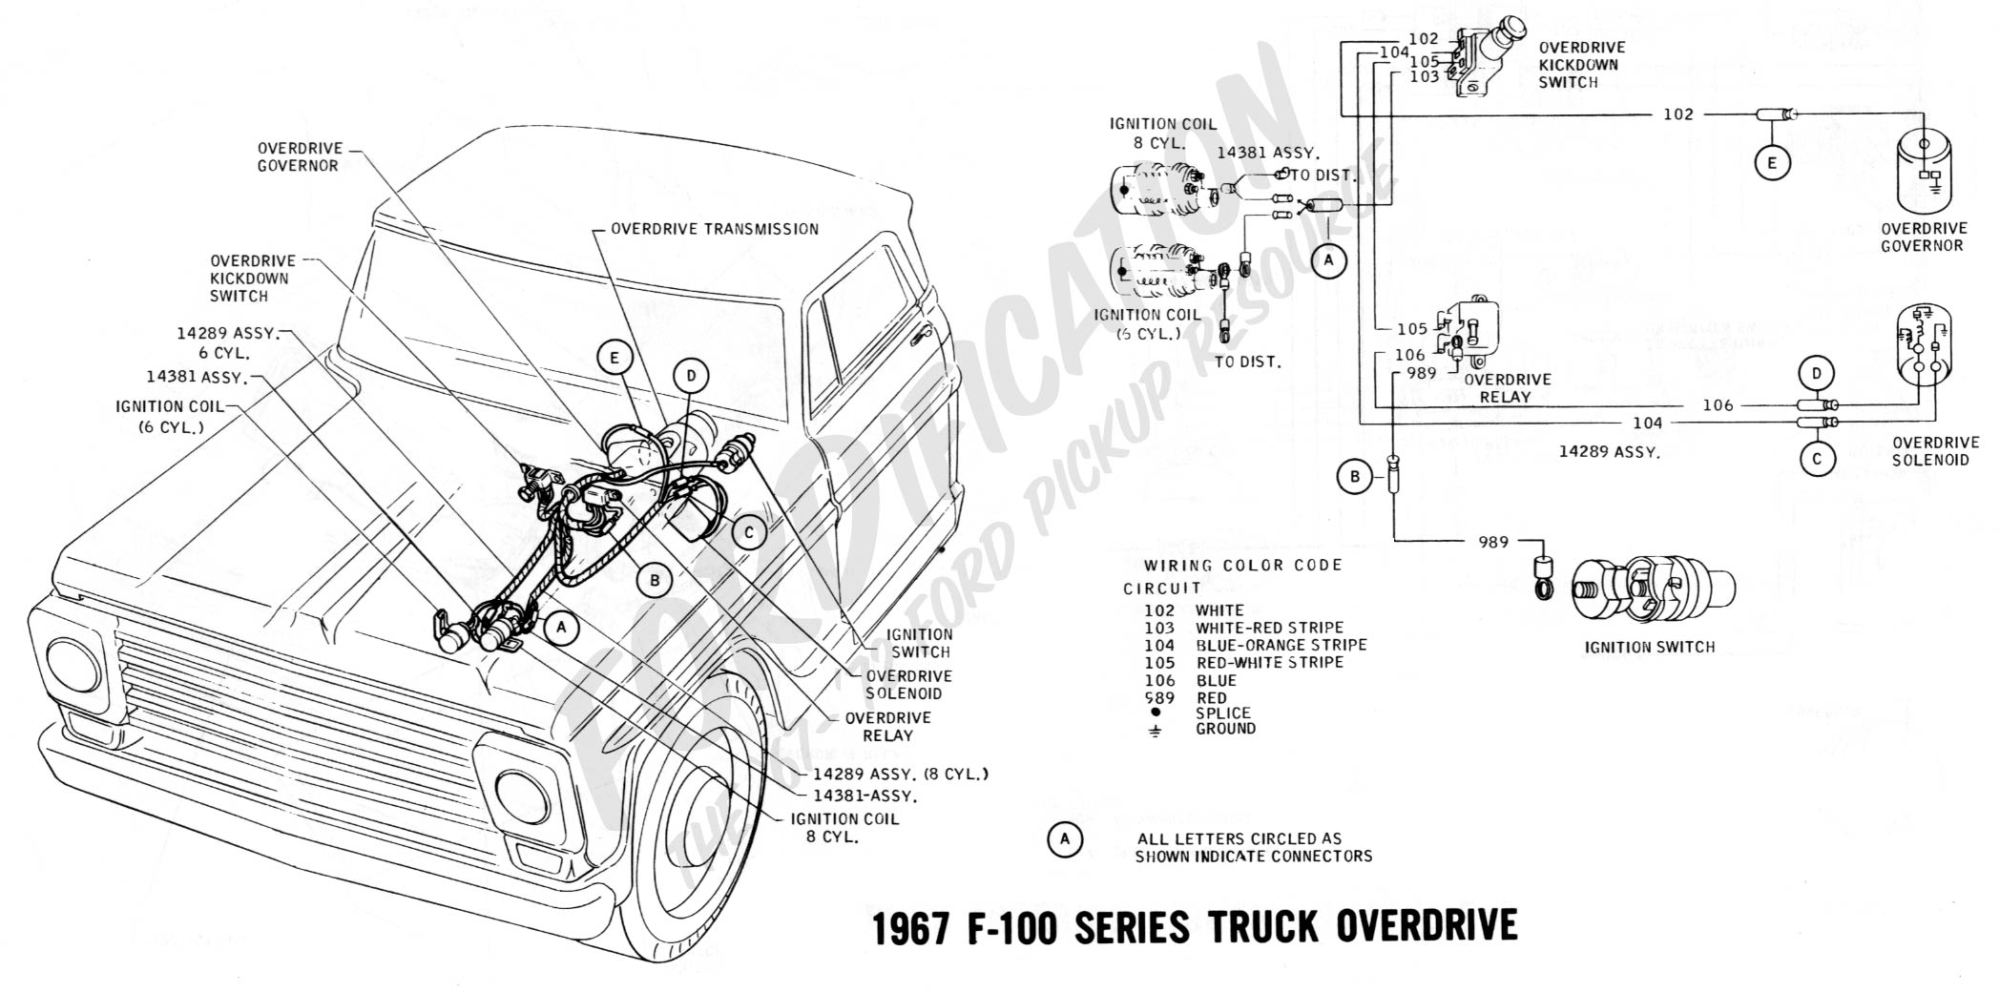 hight resolution of 1966 ford f100 wiring schematic simple wiring diagram rh david huggett co uk